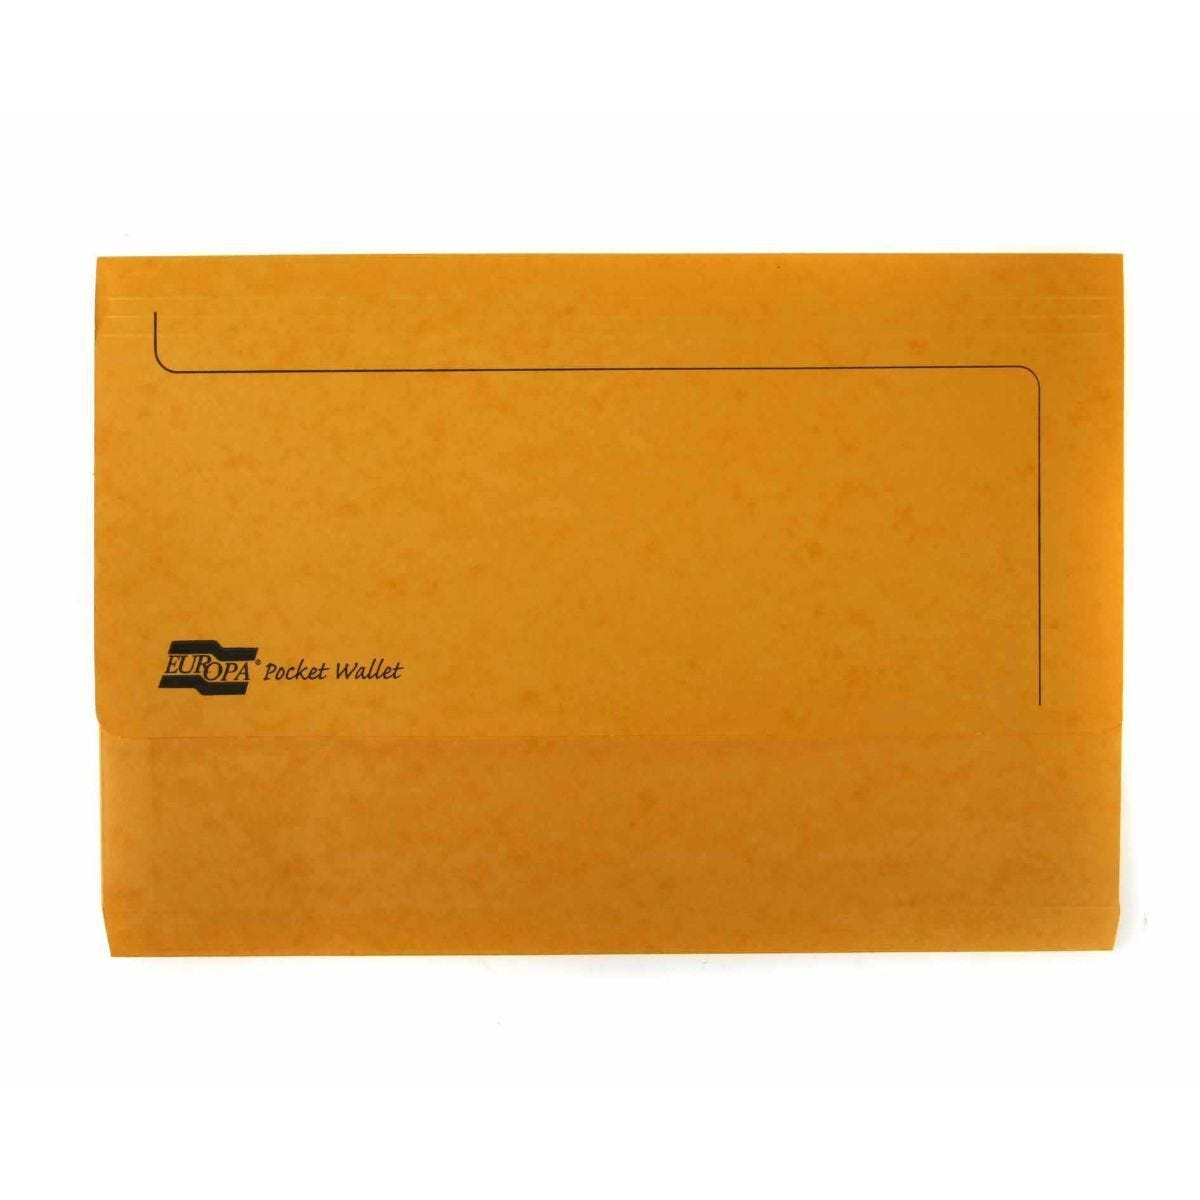 Europa Pocket Wallets Foolscap Pack of 25 Yellow